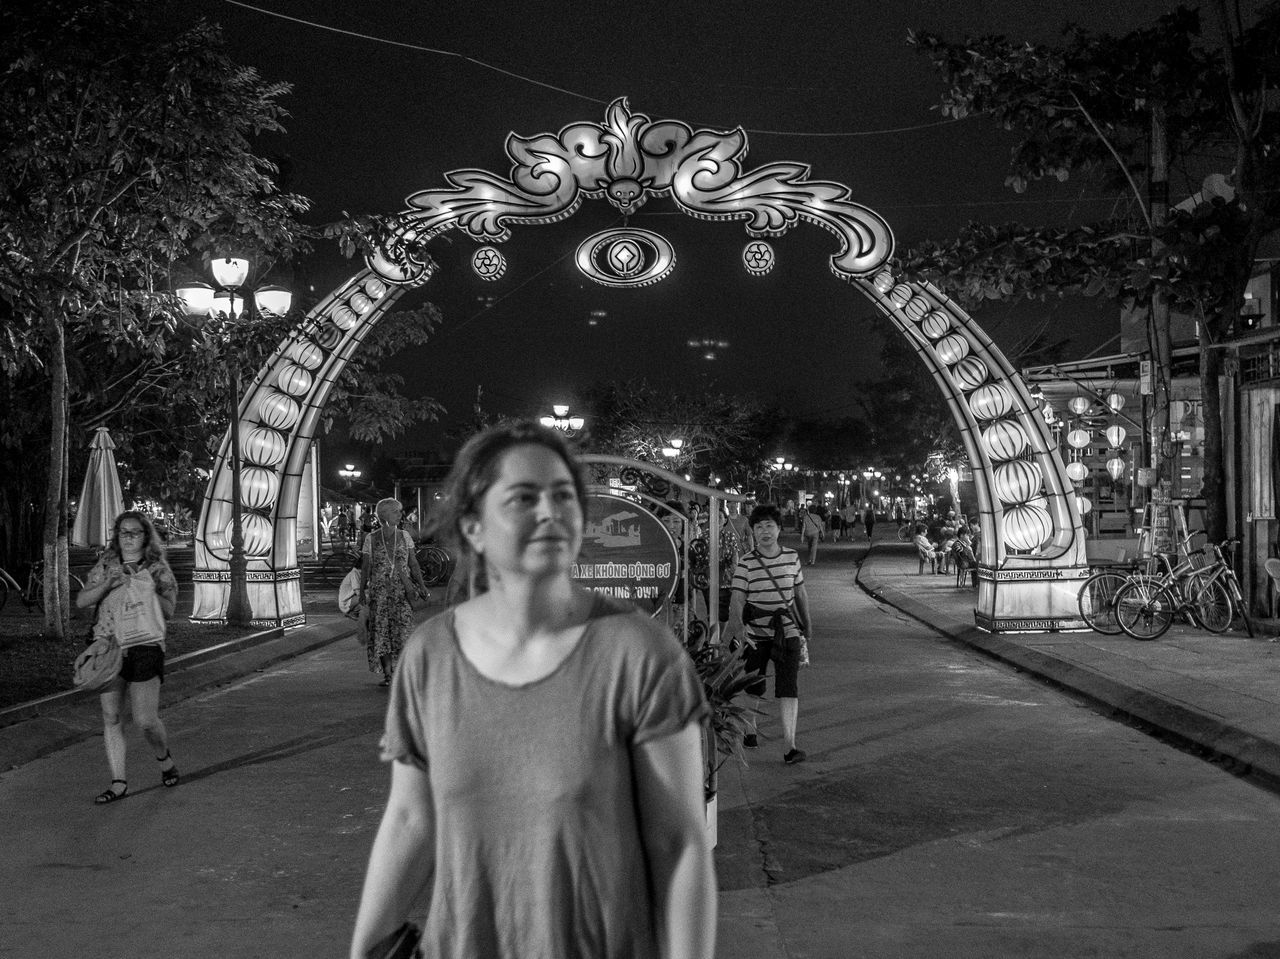 Welcome to Hoi An, Vietnam Night Vietnam FUJIFILM X-T2 Hoi An Black And White Monochrome Photography Monochrome Architecture